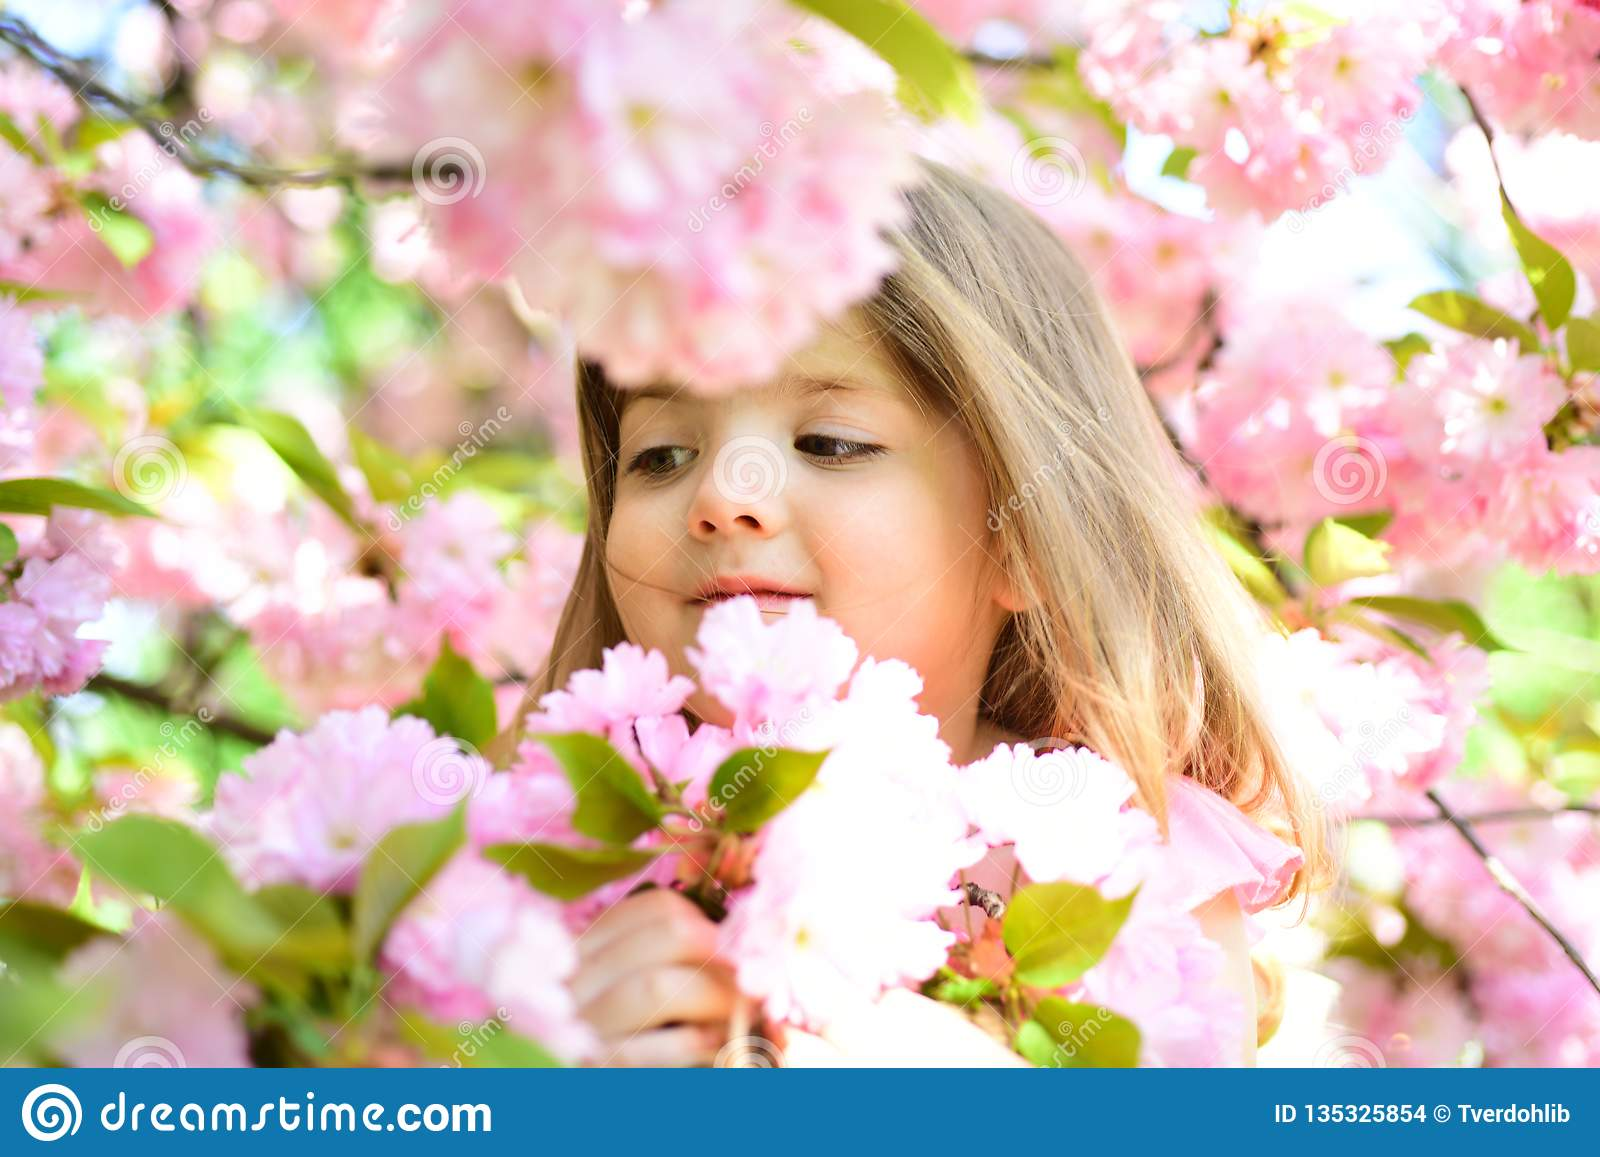 Wow. Springtime. weather forecast. face and skincare. allergy to flowers. Little girl in sunny spring. Small child